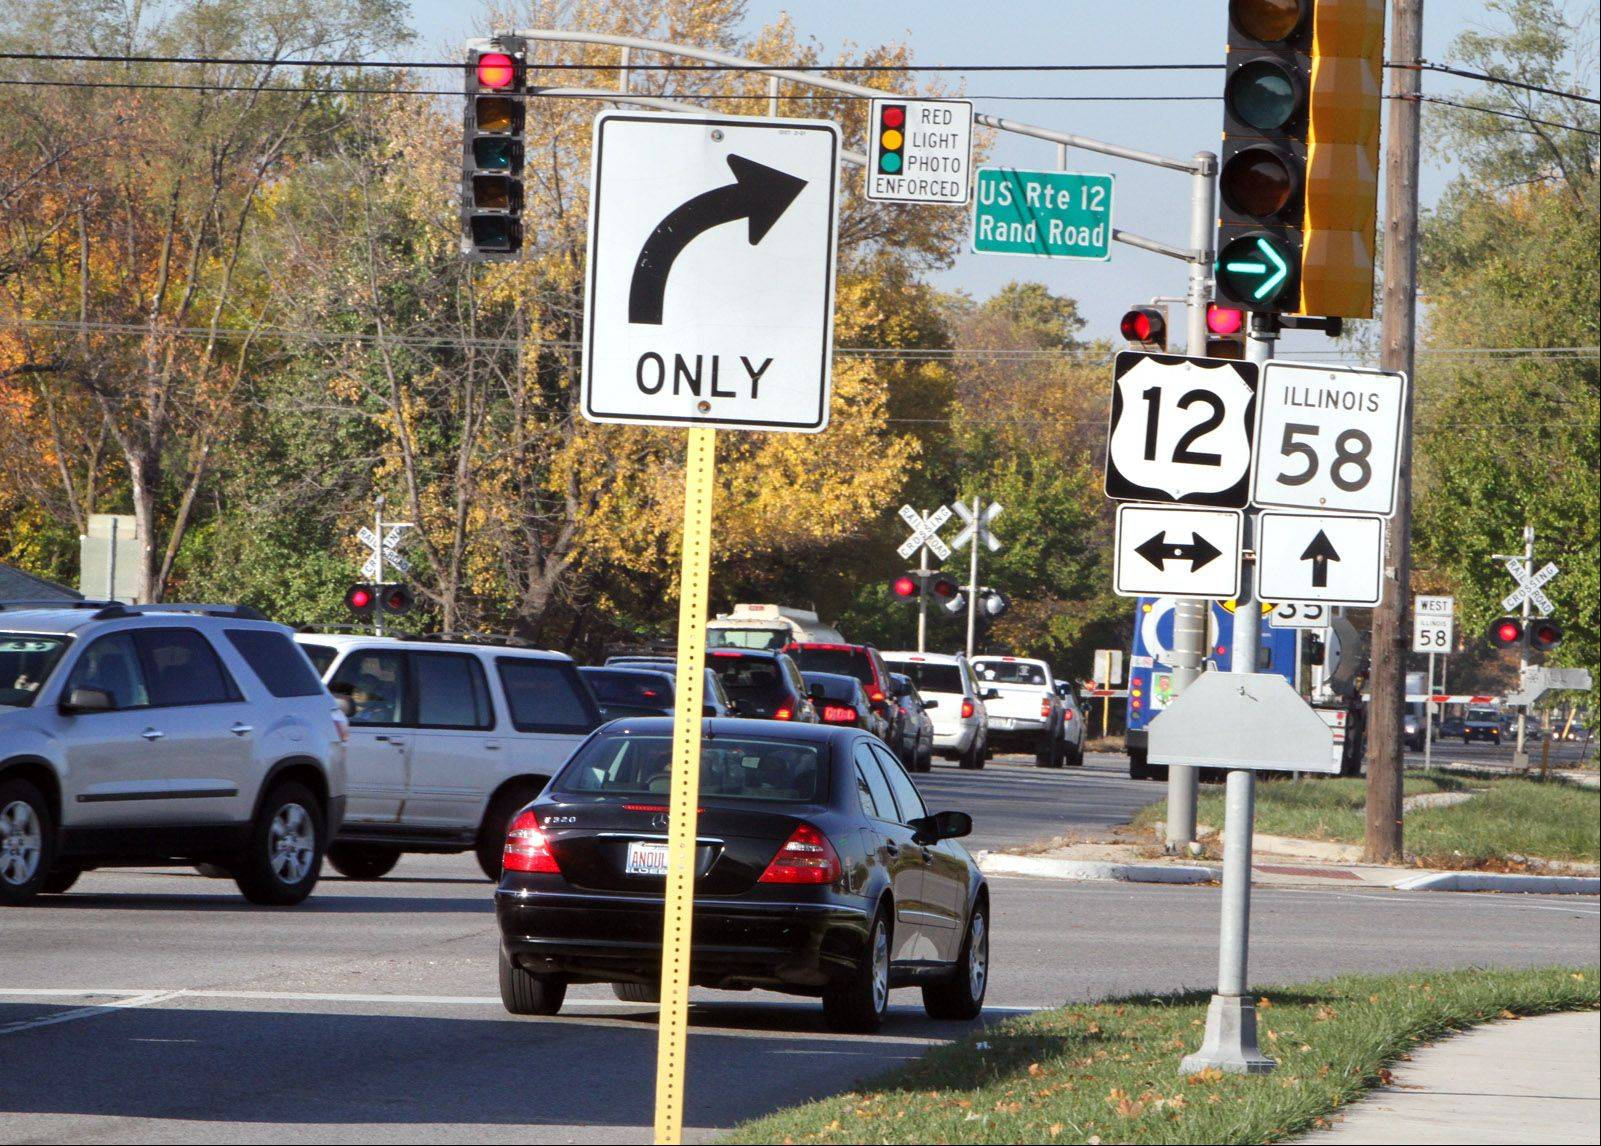 Des Plaines police want to collect more data on red-light cameras at the intersection of Golf and Rand roads that have been in place for a year. Crashes at that intersection went up, though they were minor in nature, police say.